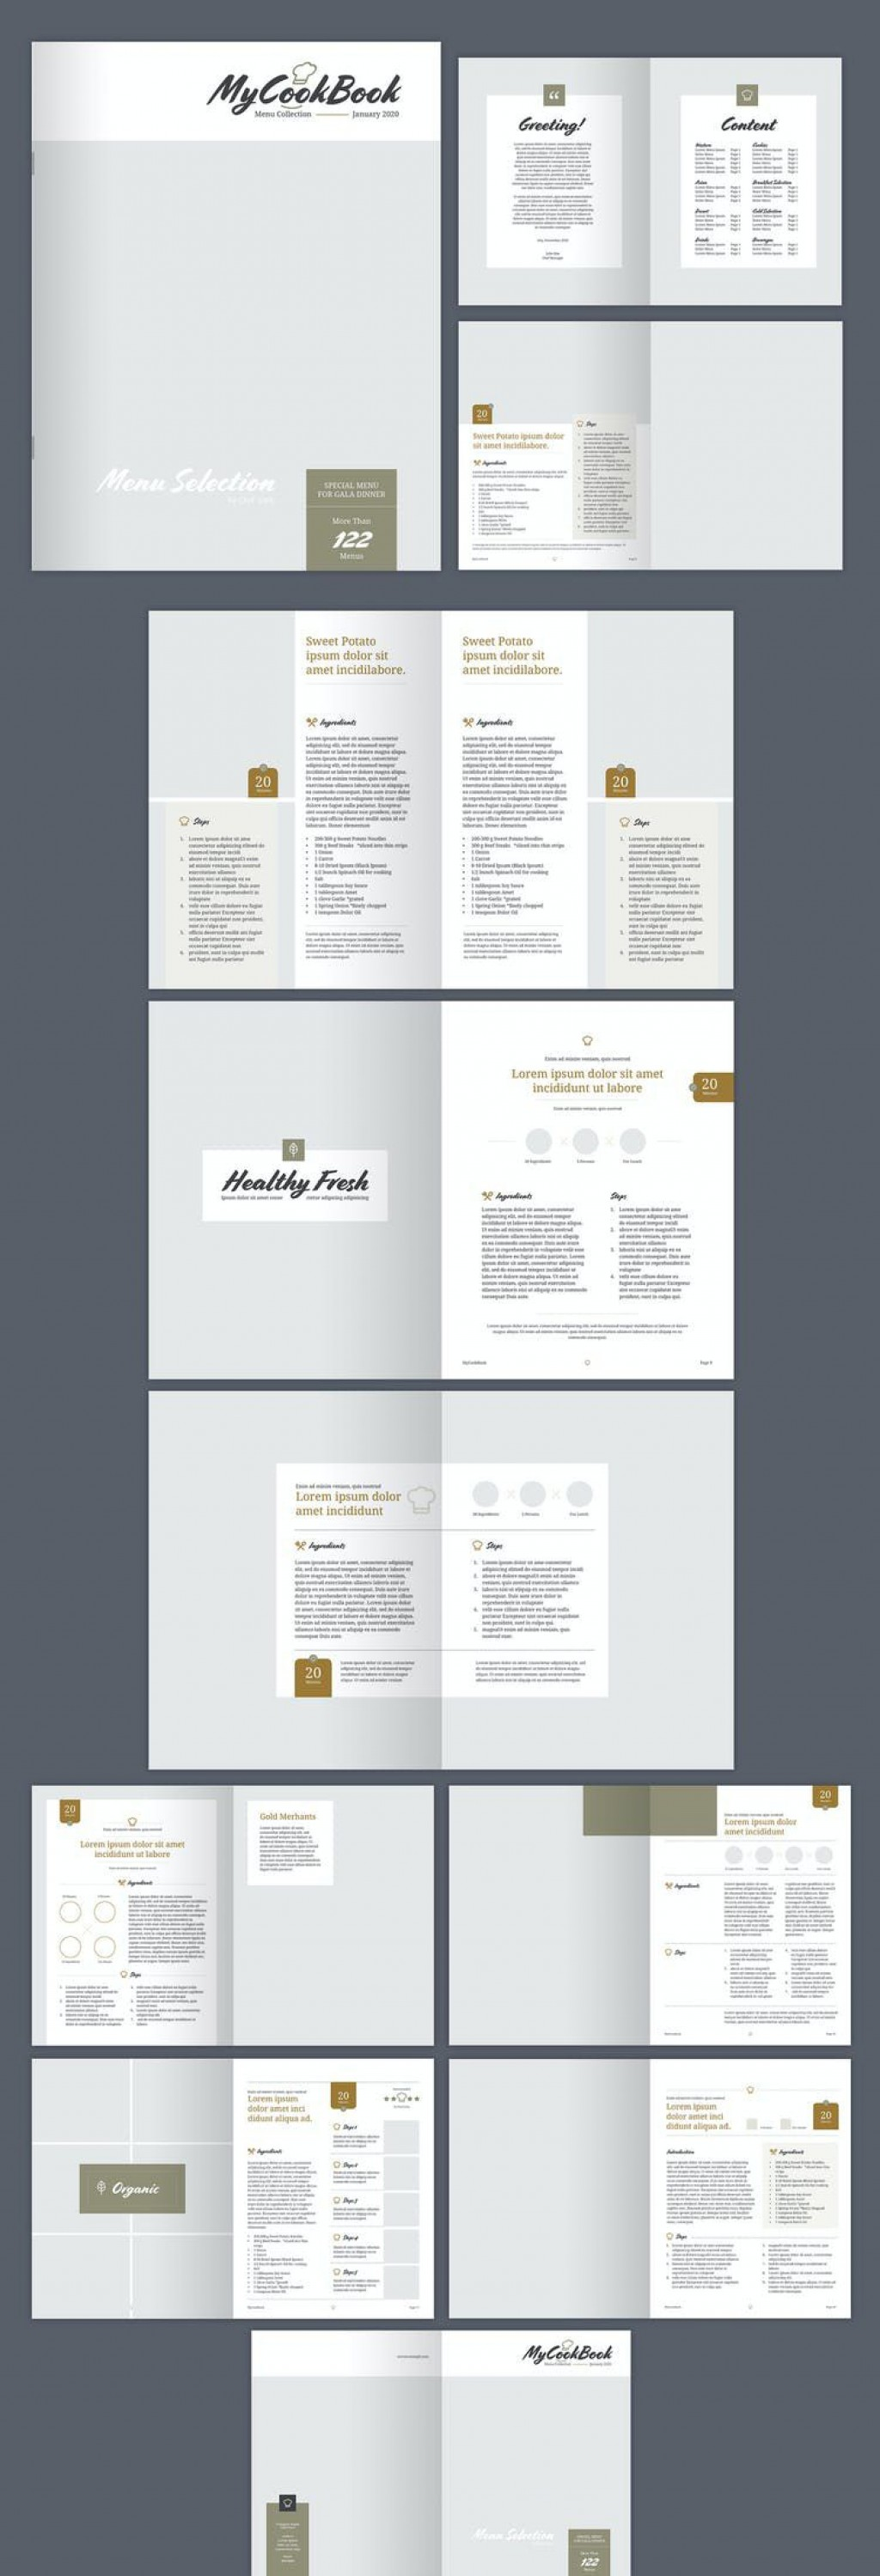 005 Amazing Free Photo Book Template High Resolution  TemplatesLarge